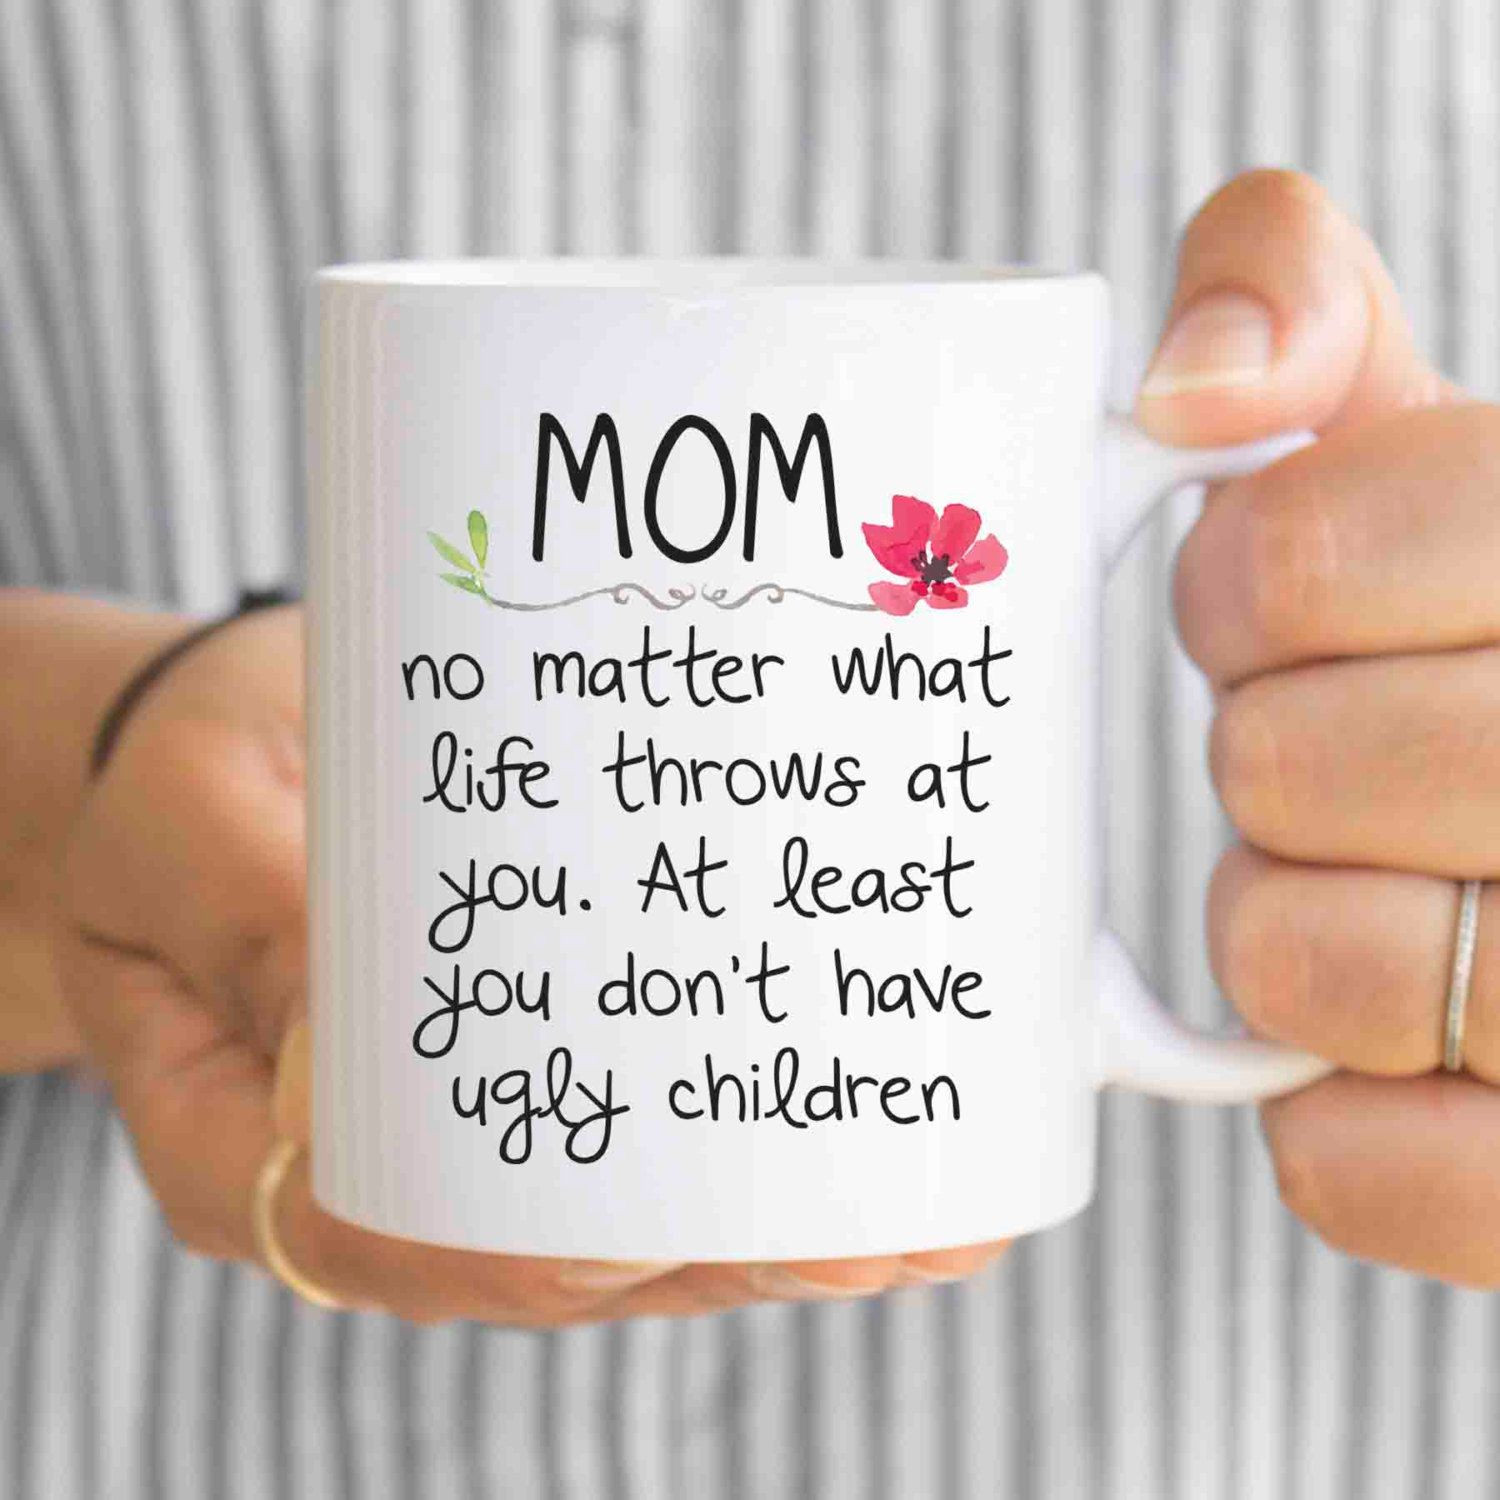 Best Mother Day Gift Ideas  15 Unique Mother s Day Gifts Ideas 2019 For Mom – Best